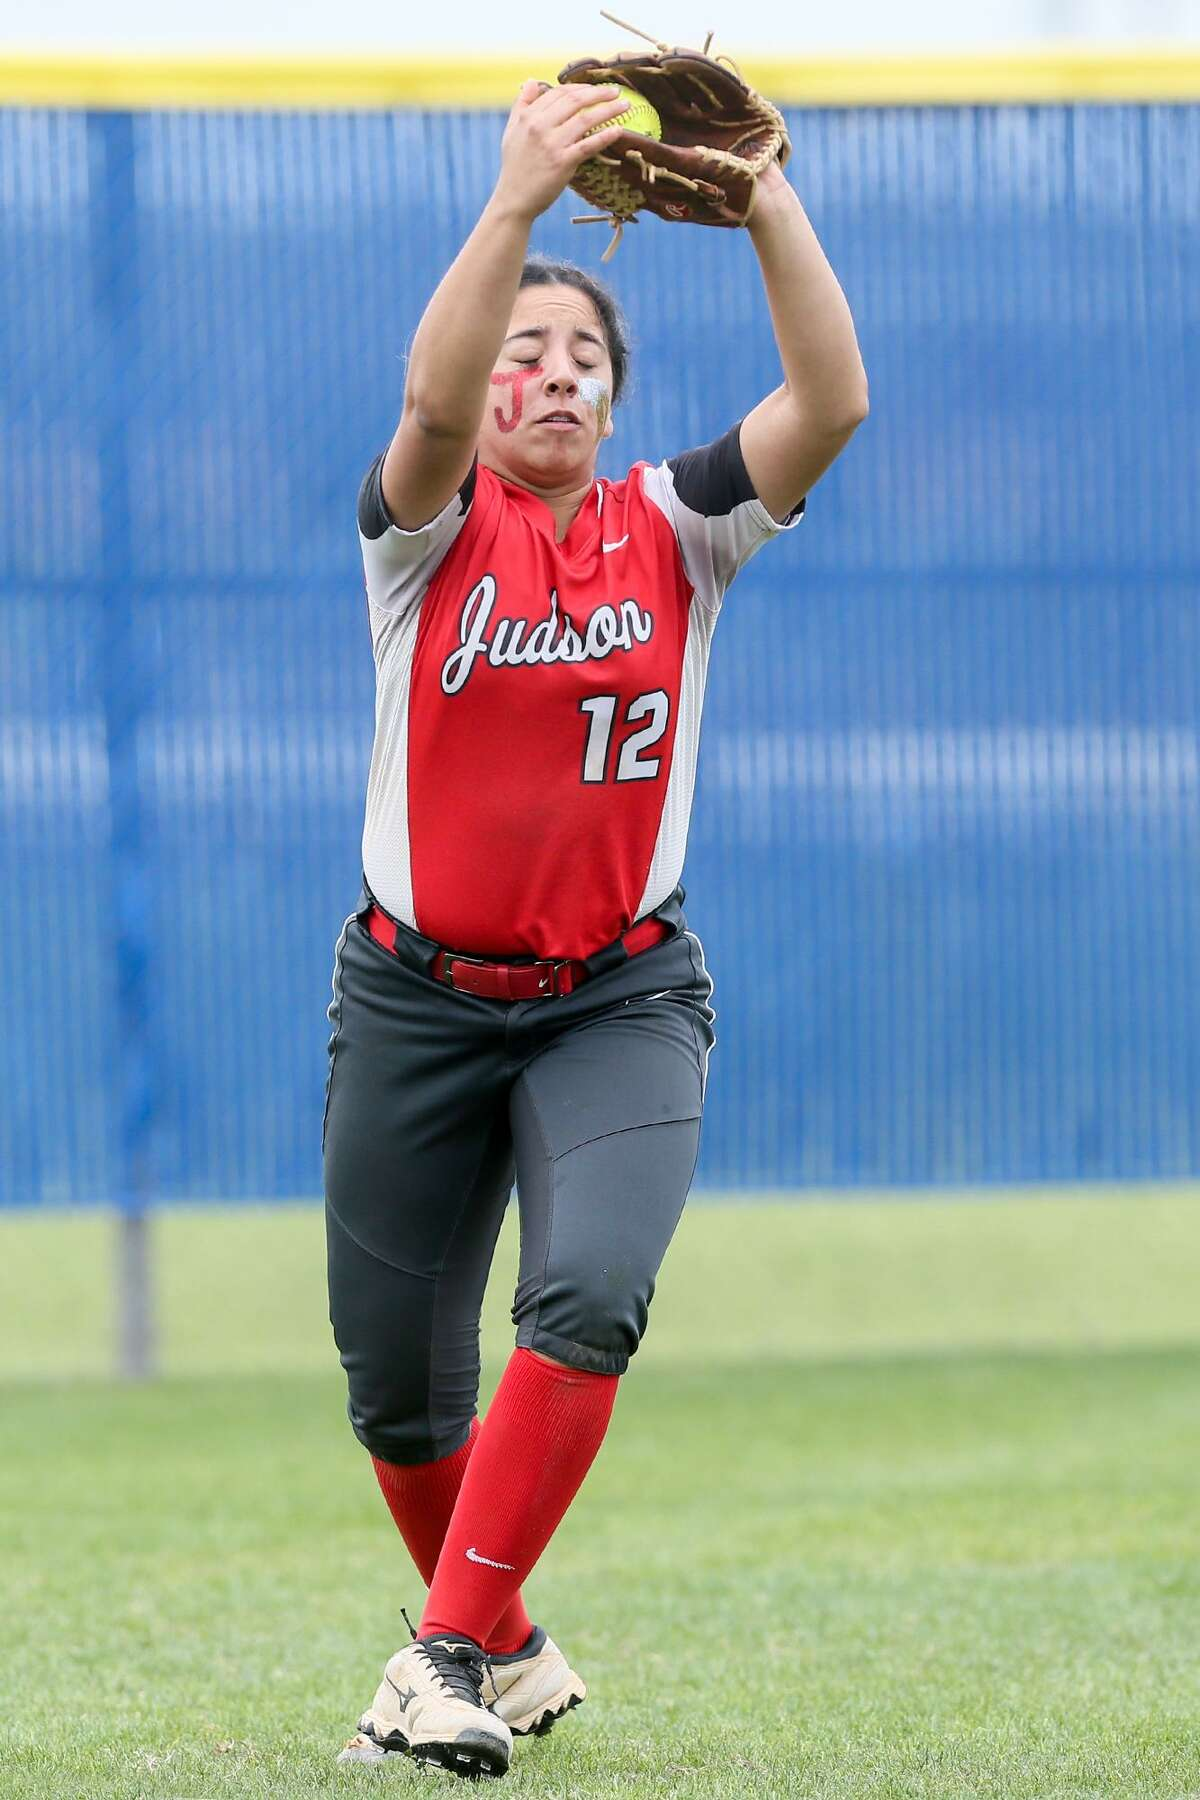 Judson's Angela Ramirez catches a fly ball to left field to retire the side in the sixth inning of their District 27-6A softball game with Clemens at Clemens on Thursday, March 15, 2018. Judson beat Clemens 3-2. MARVIN PFEIFFER/mpfeiffer@express-news.net